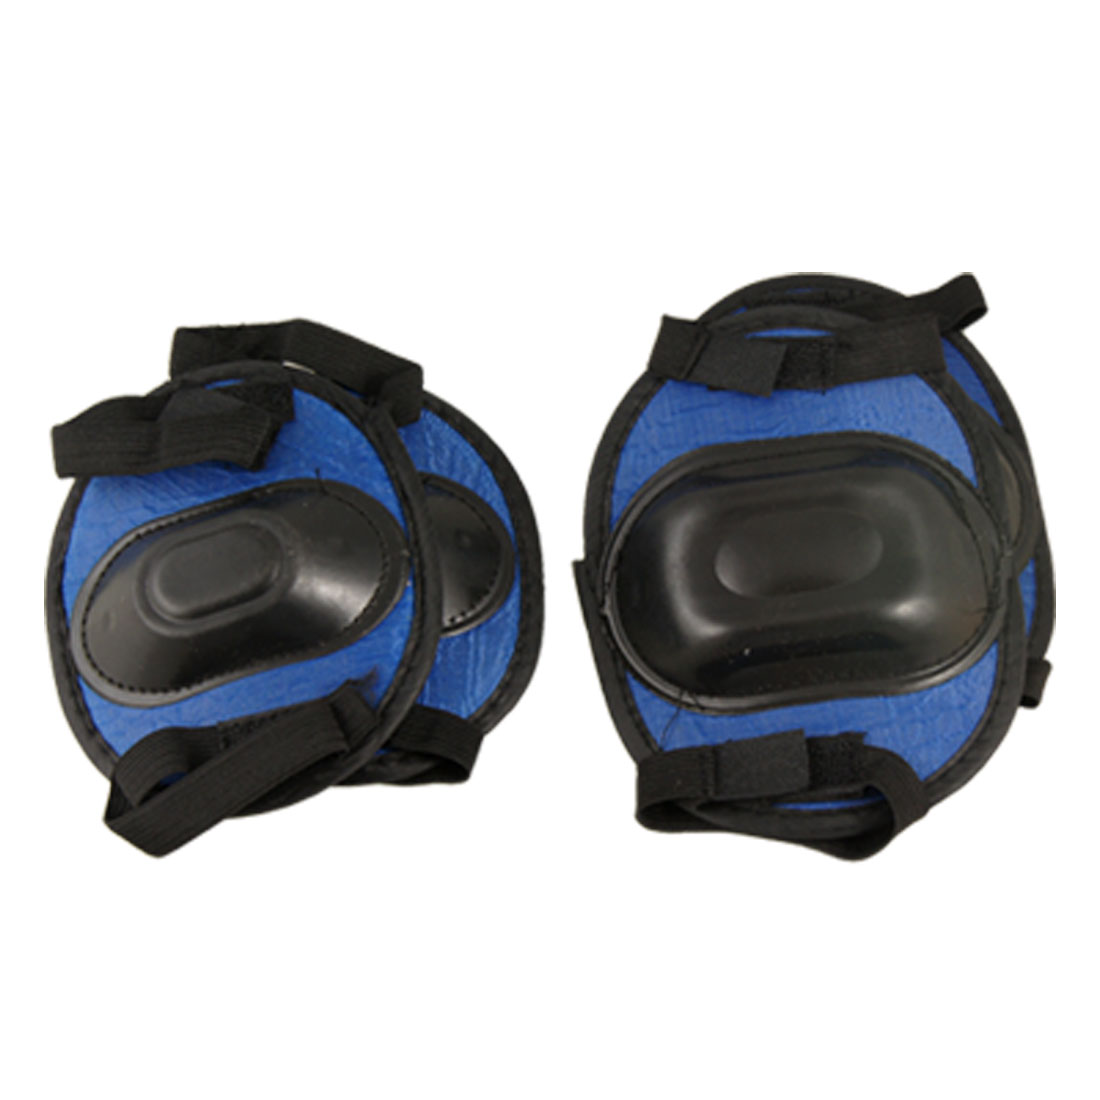 Skateboard Safety Protective Gear Set Palm Wrist Guard Elbow Knee Pads for Kids